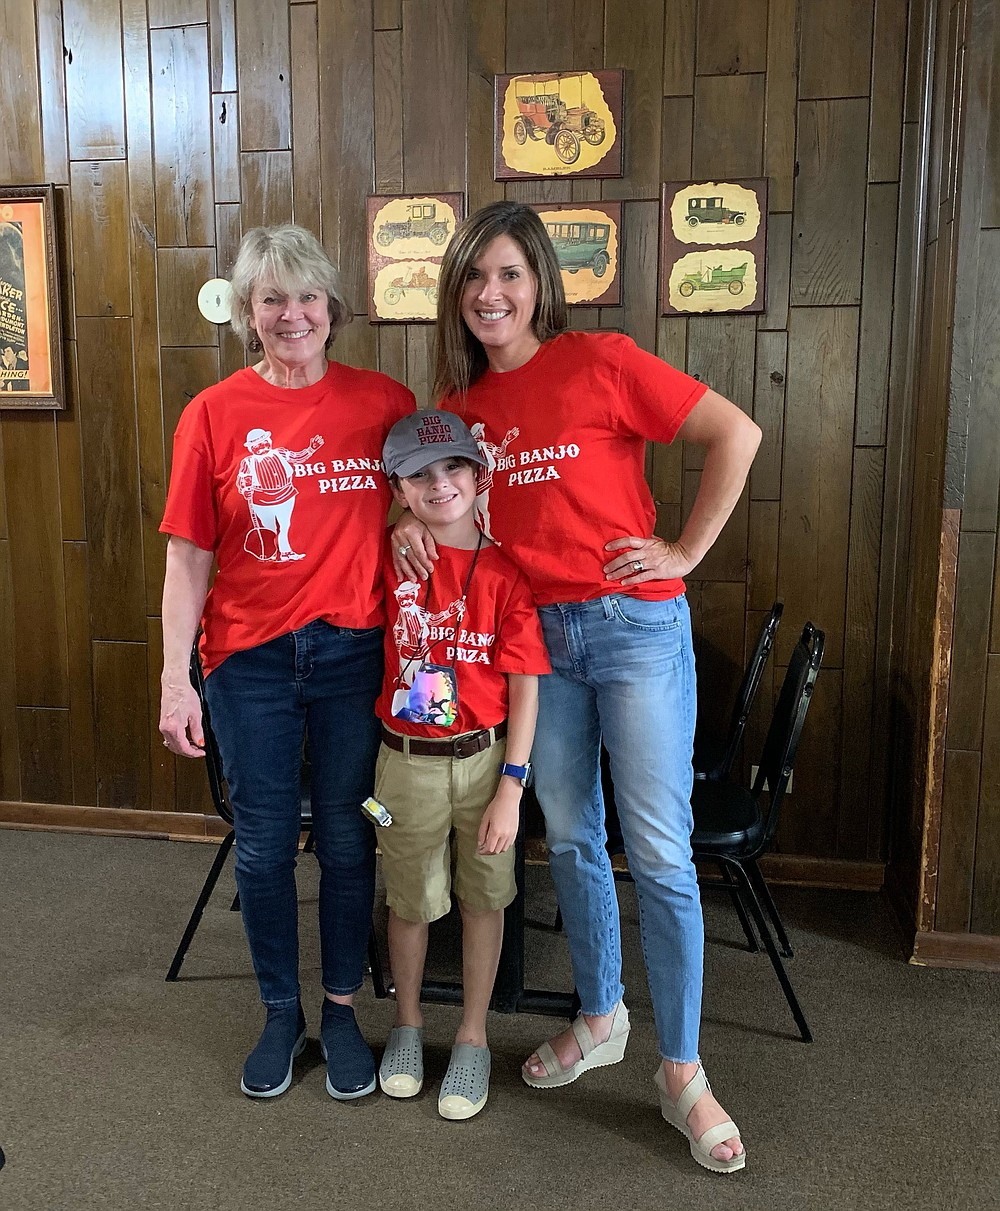 The Ratliff family, including Rita Ratliff (left), Brandy Ratliff Weatherly (right) and her son, Ethan Weatherly, still own Big Banjo Pizza, 4208 W. 28th Ave. (Special to The Commercial/Brandy Weatherly)